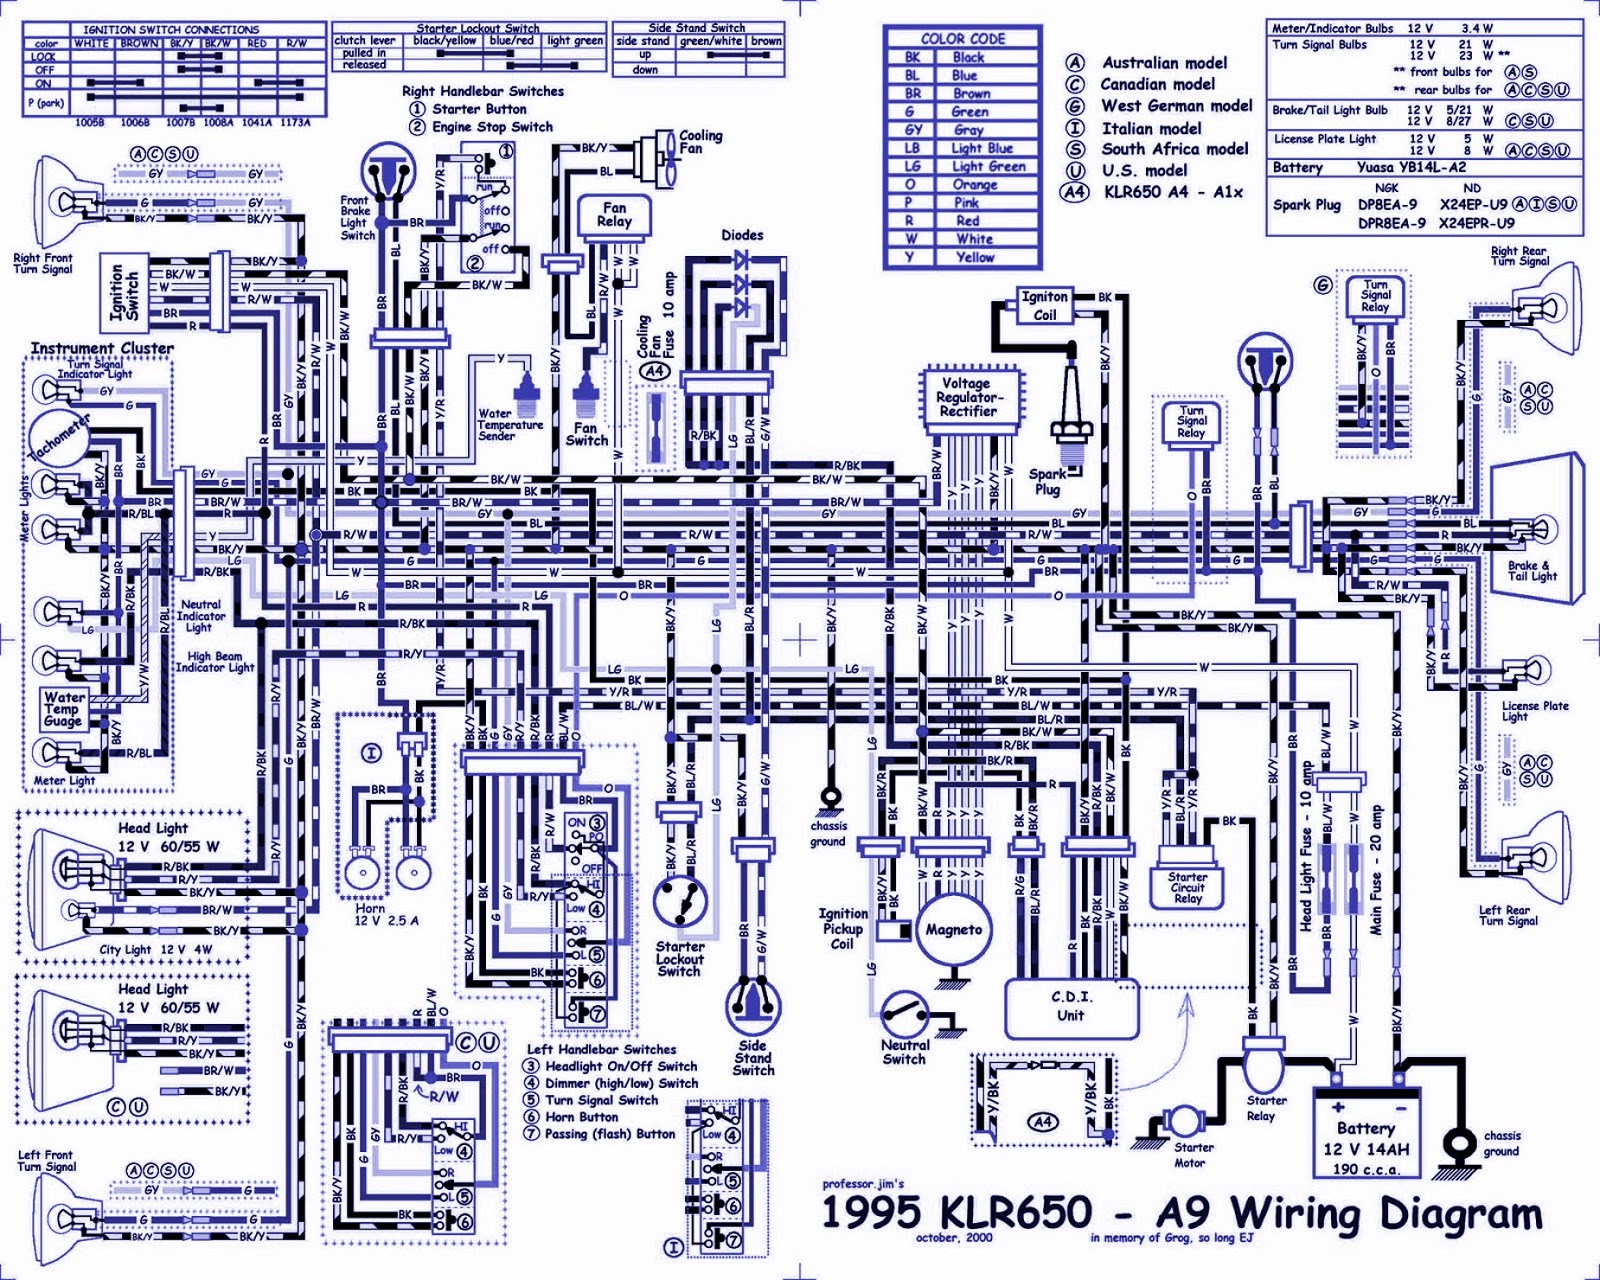 Saab 9 3 Headlight Wiring Diagram Library Fuel Pump Appealing 5 Pdf Contemporary